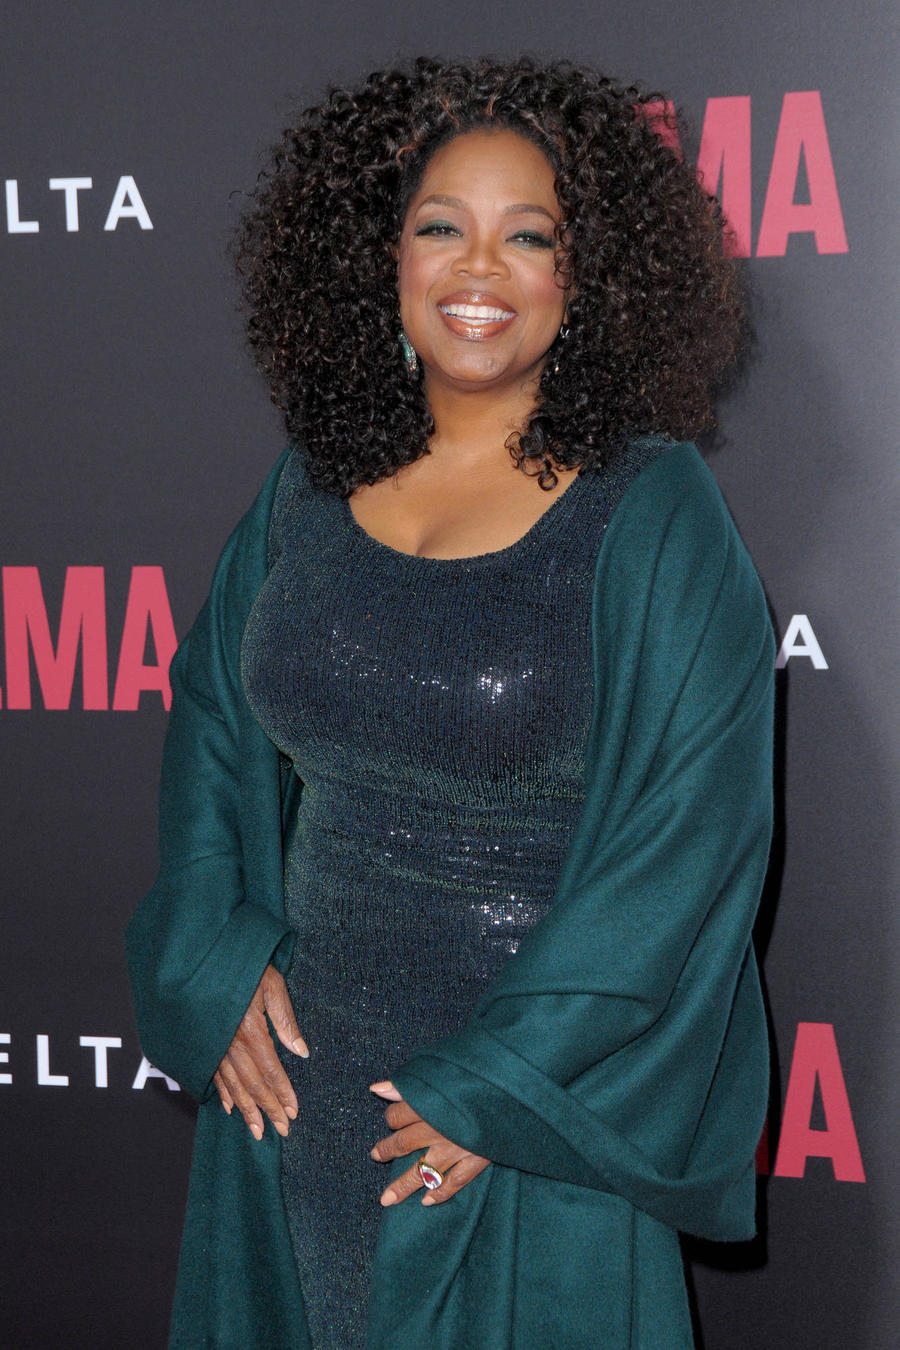 Oprah Winfrey Embraces Weightloss On O Magazine Cover